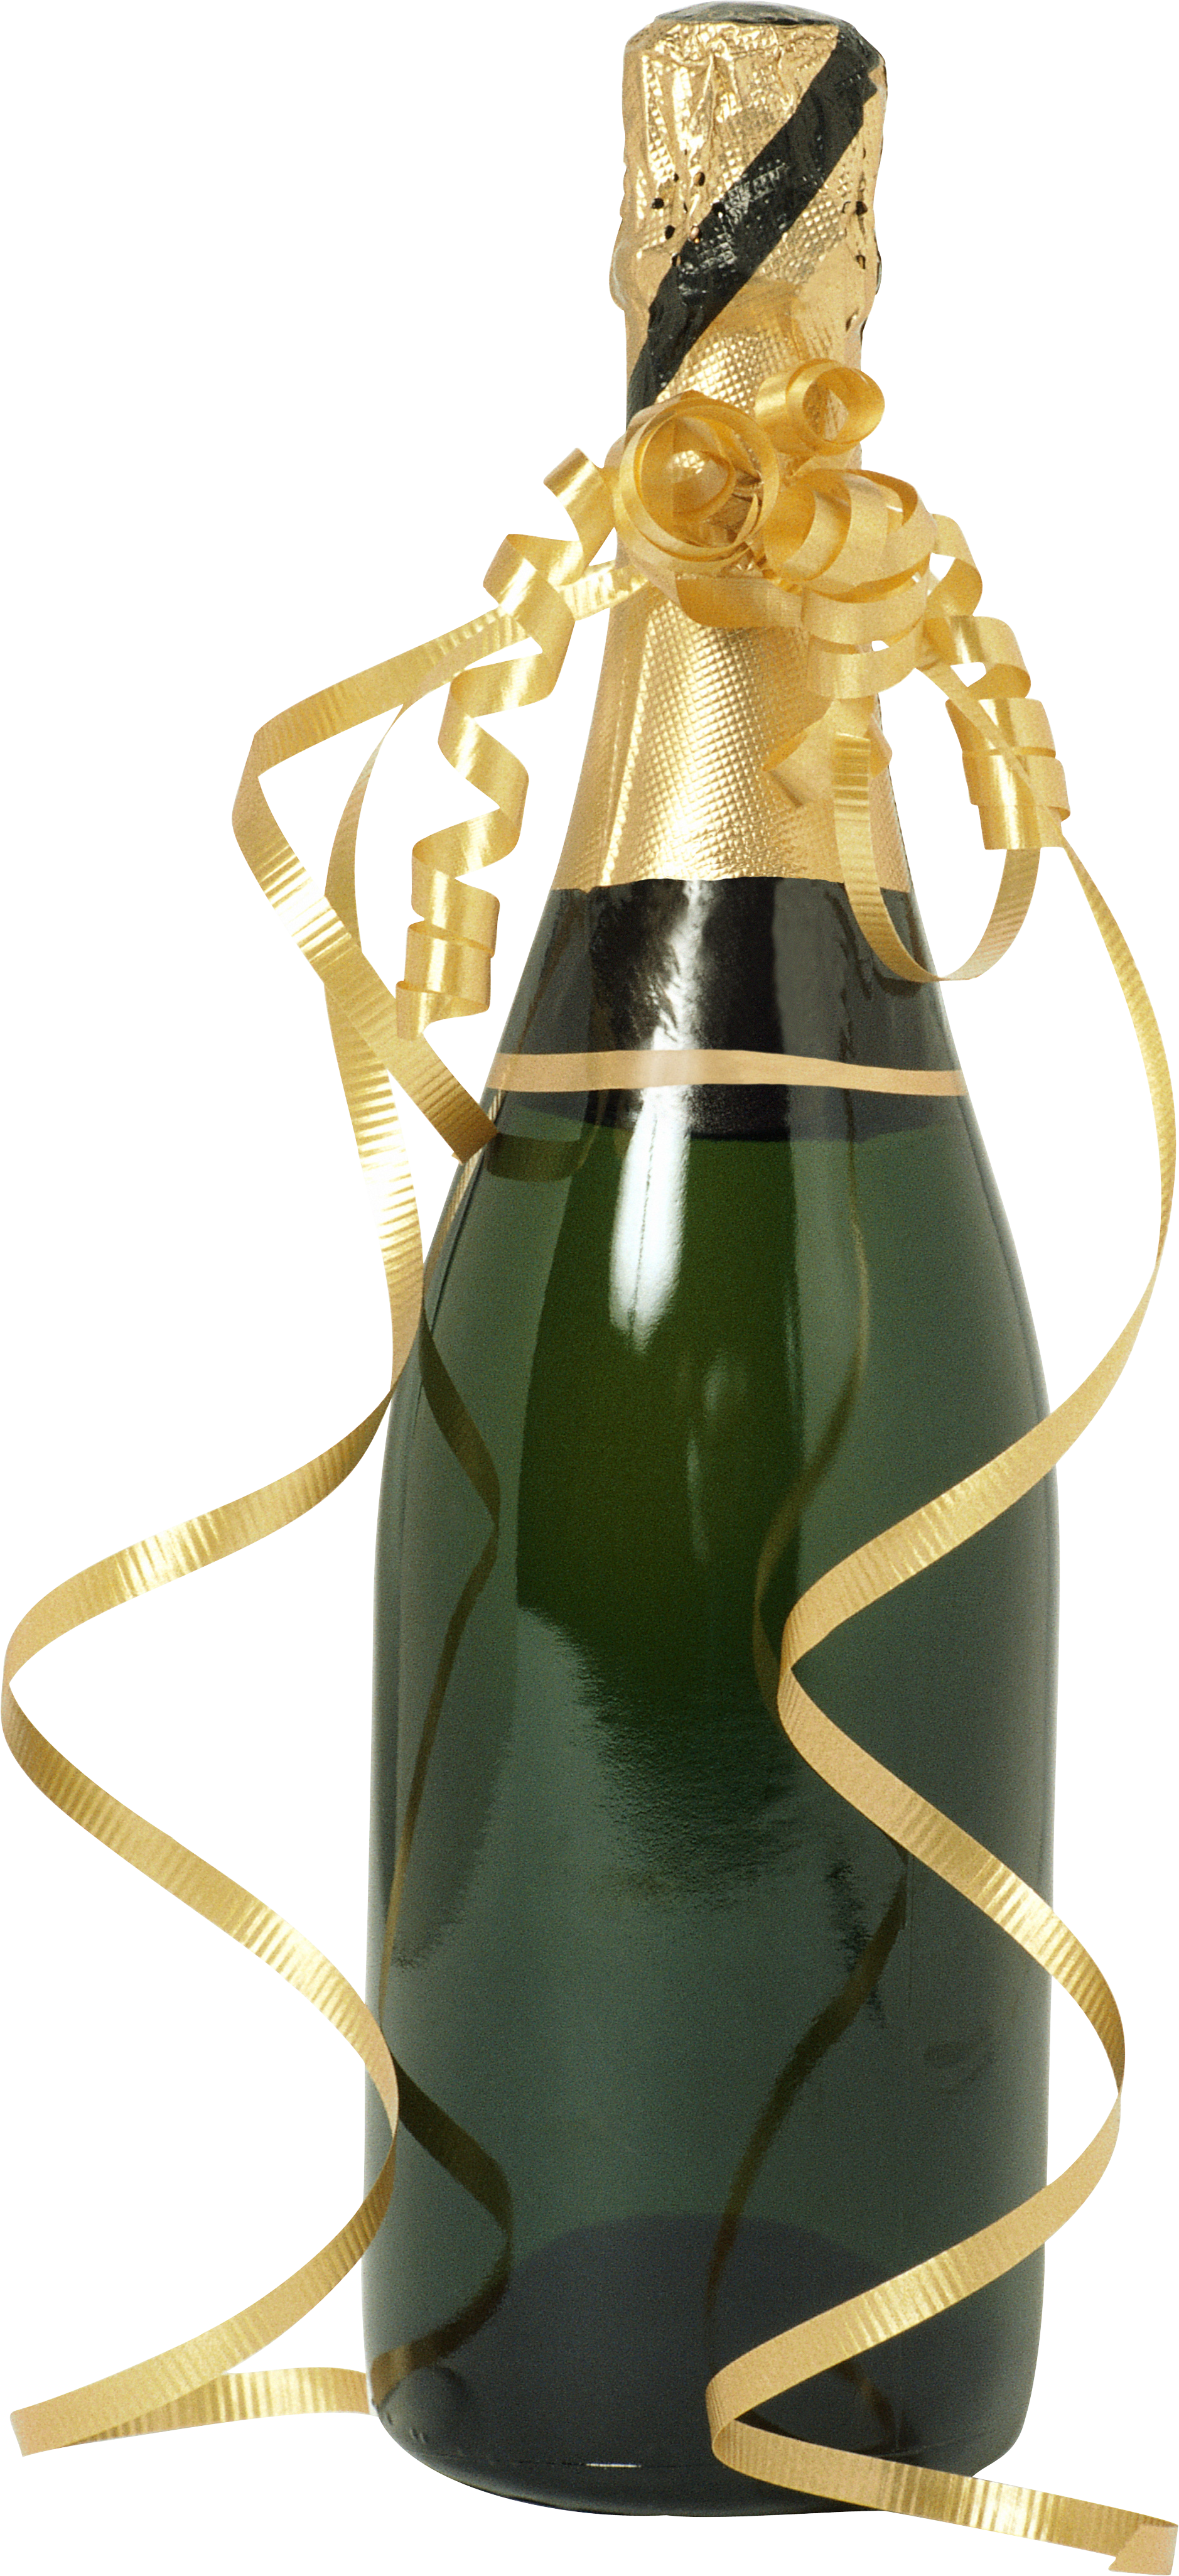 Bottle of champagne png. Image purepng free transparent